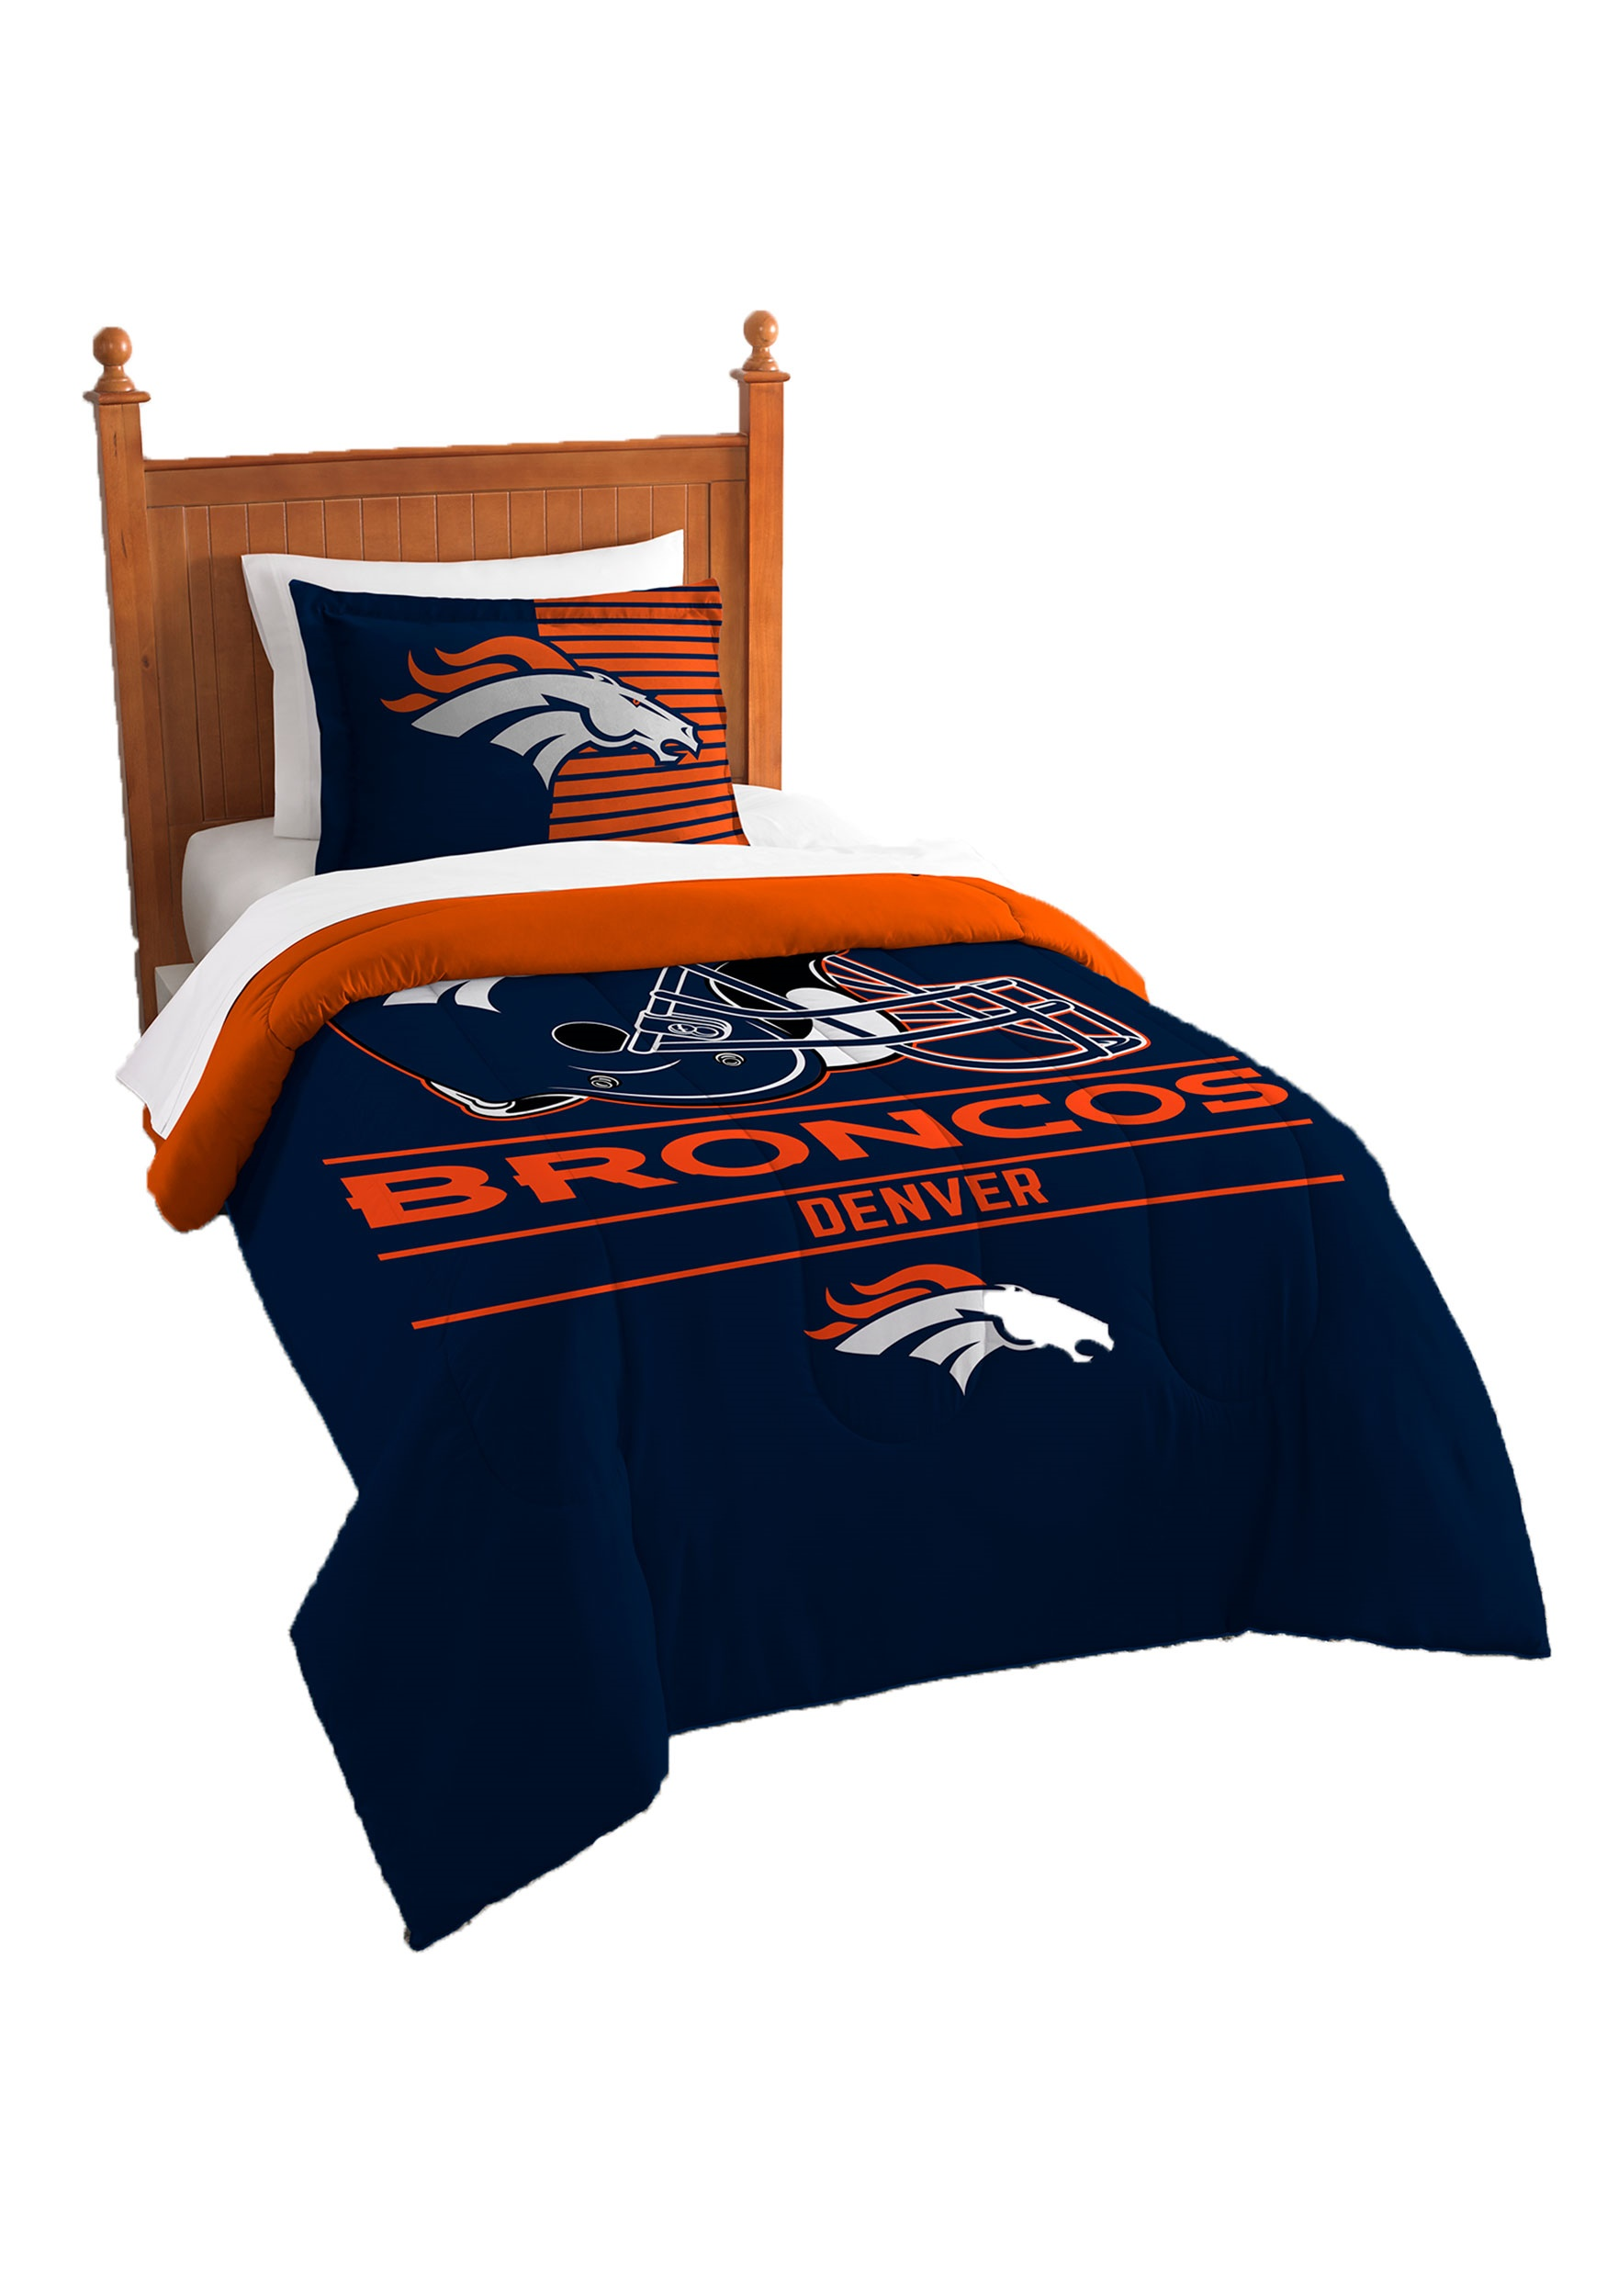 Beau Denver Broncos Twin Comforter Set